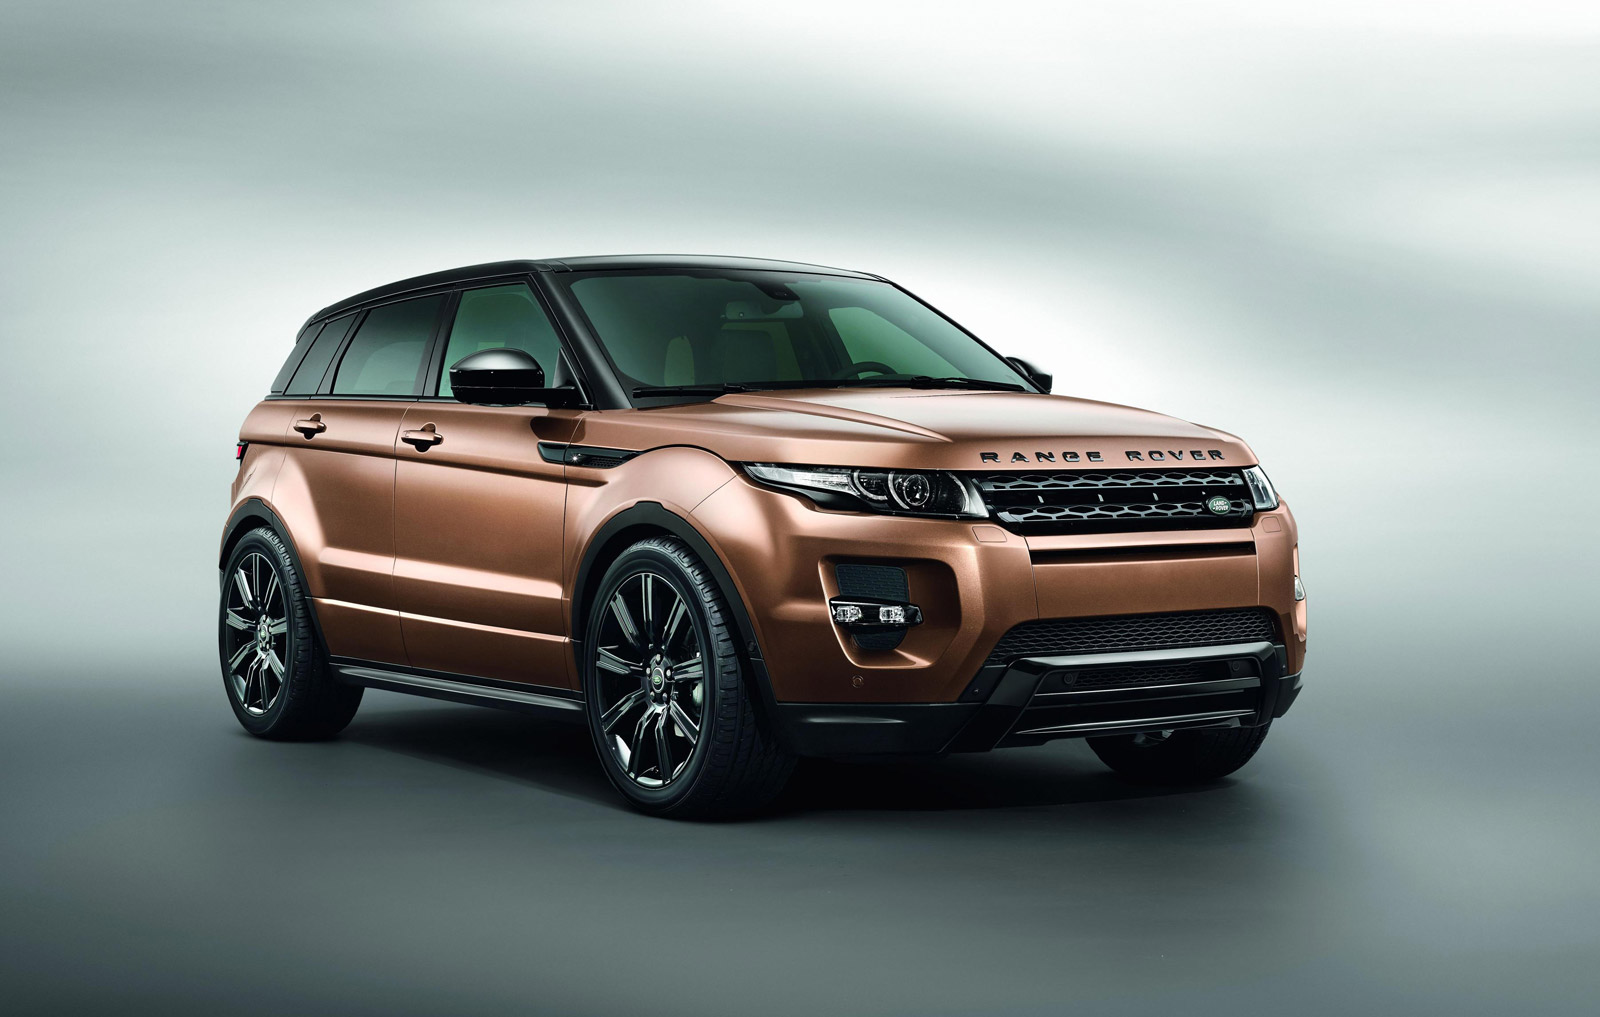 2014 land rover range rover evoque review ratings specs